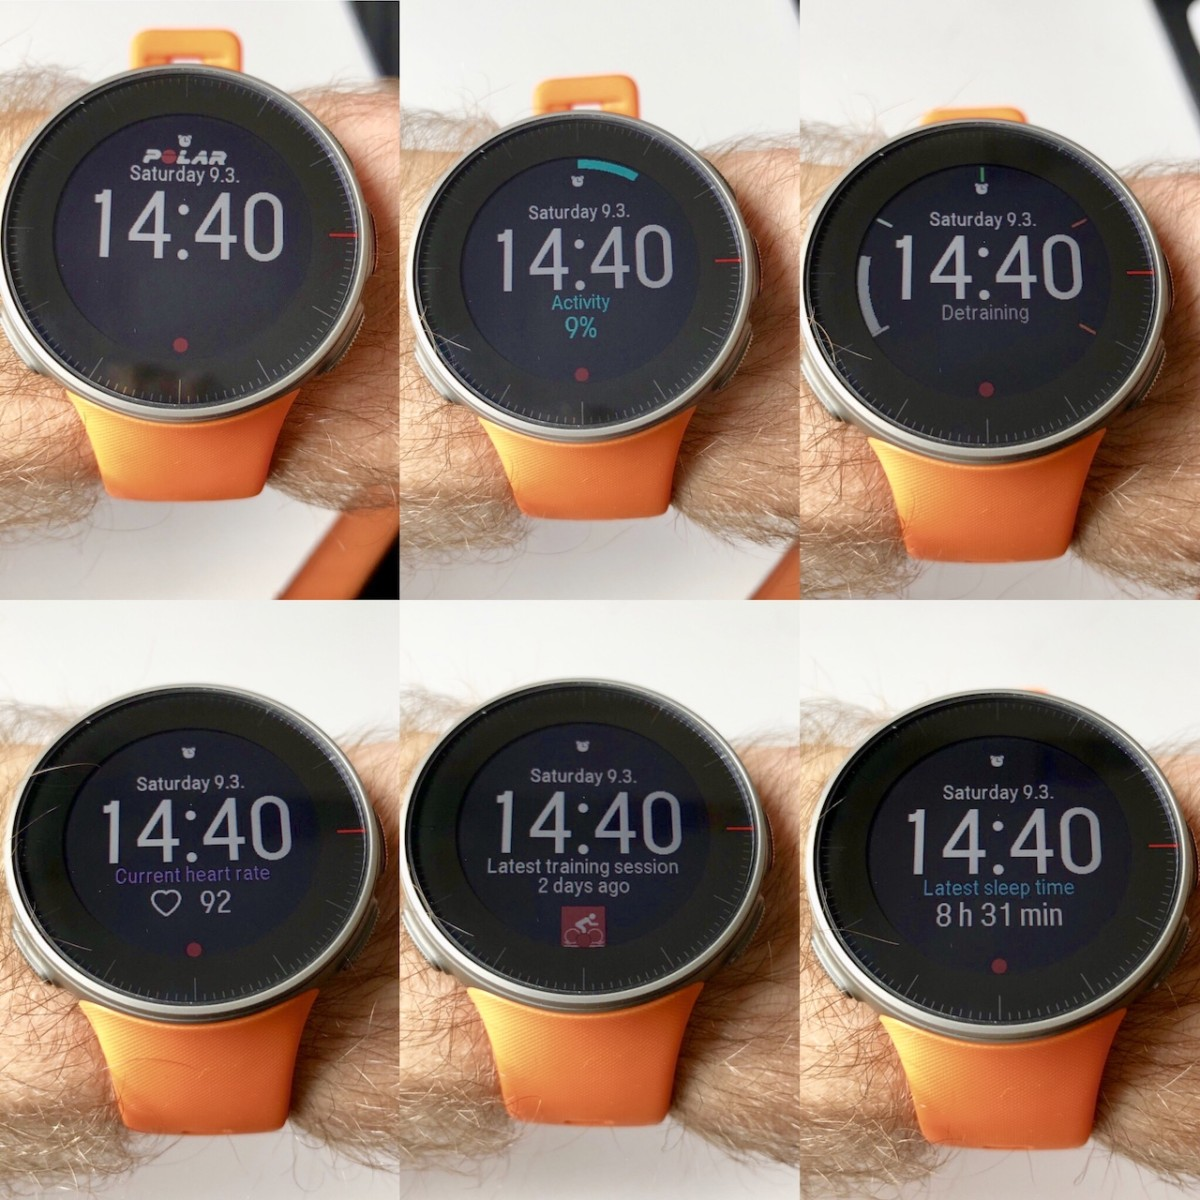 TitaniumGeek B8AA62E1 95D5 4CAA A584 C0A892F5DB94 Polar Vantage V Review   A Garmin Killer? Cycling Gear Reviews Heart Rate Monitors Running  running Polar HRM garmin cycling apple watch   Image of B8AA62E1 95D5 4CAA A584 C0A892F5DB94